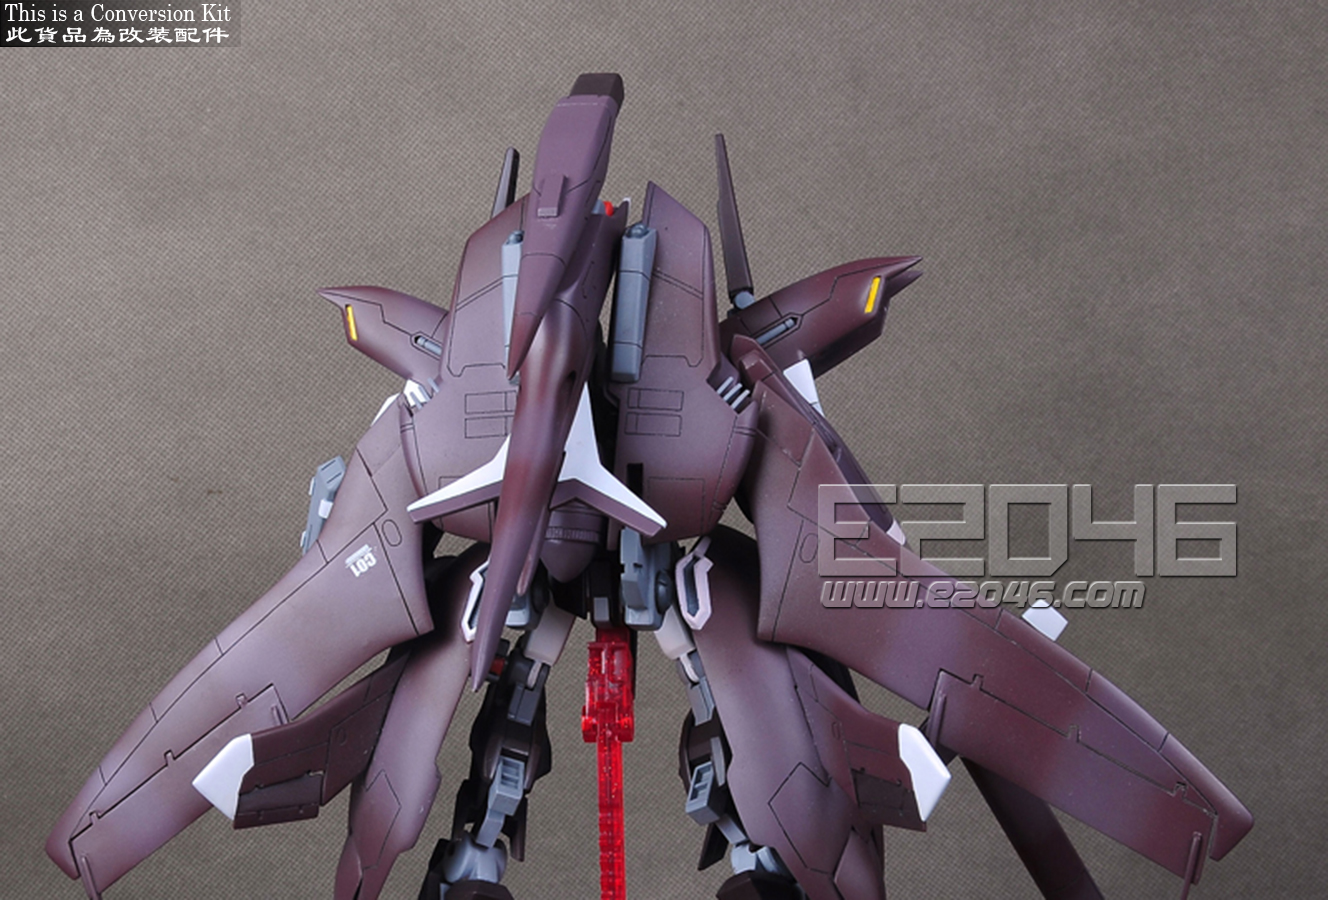 GNW-001/hs-T01 Gundam Throne Eins Turbulenz conversion parts